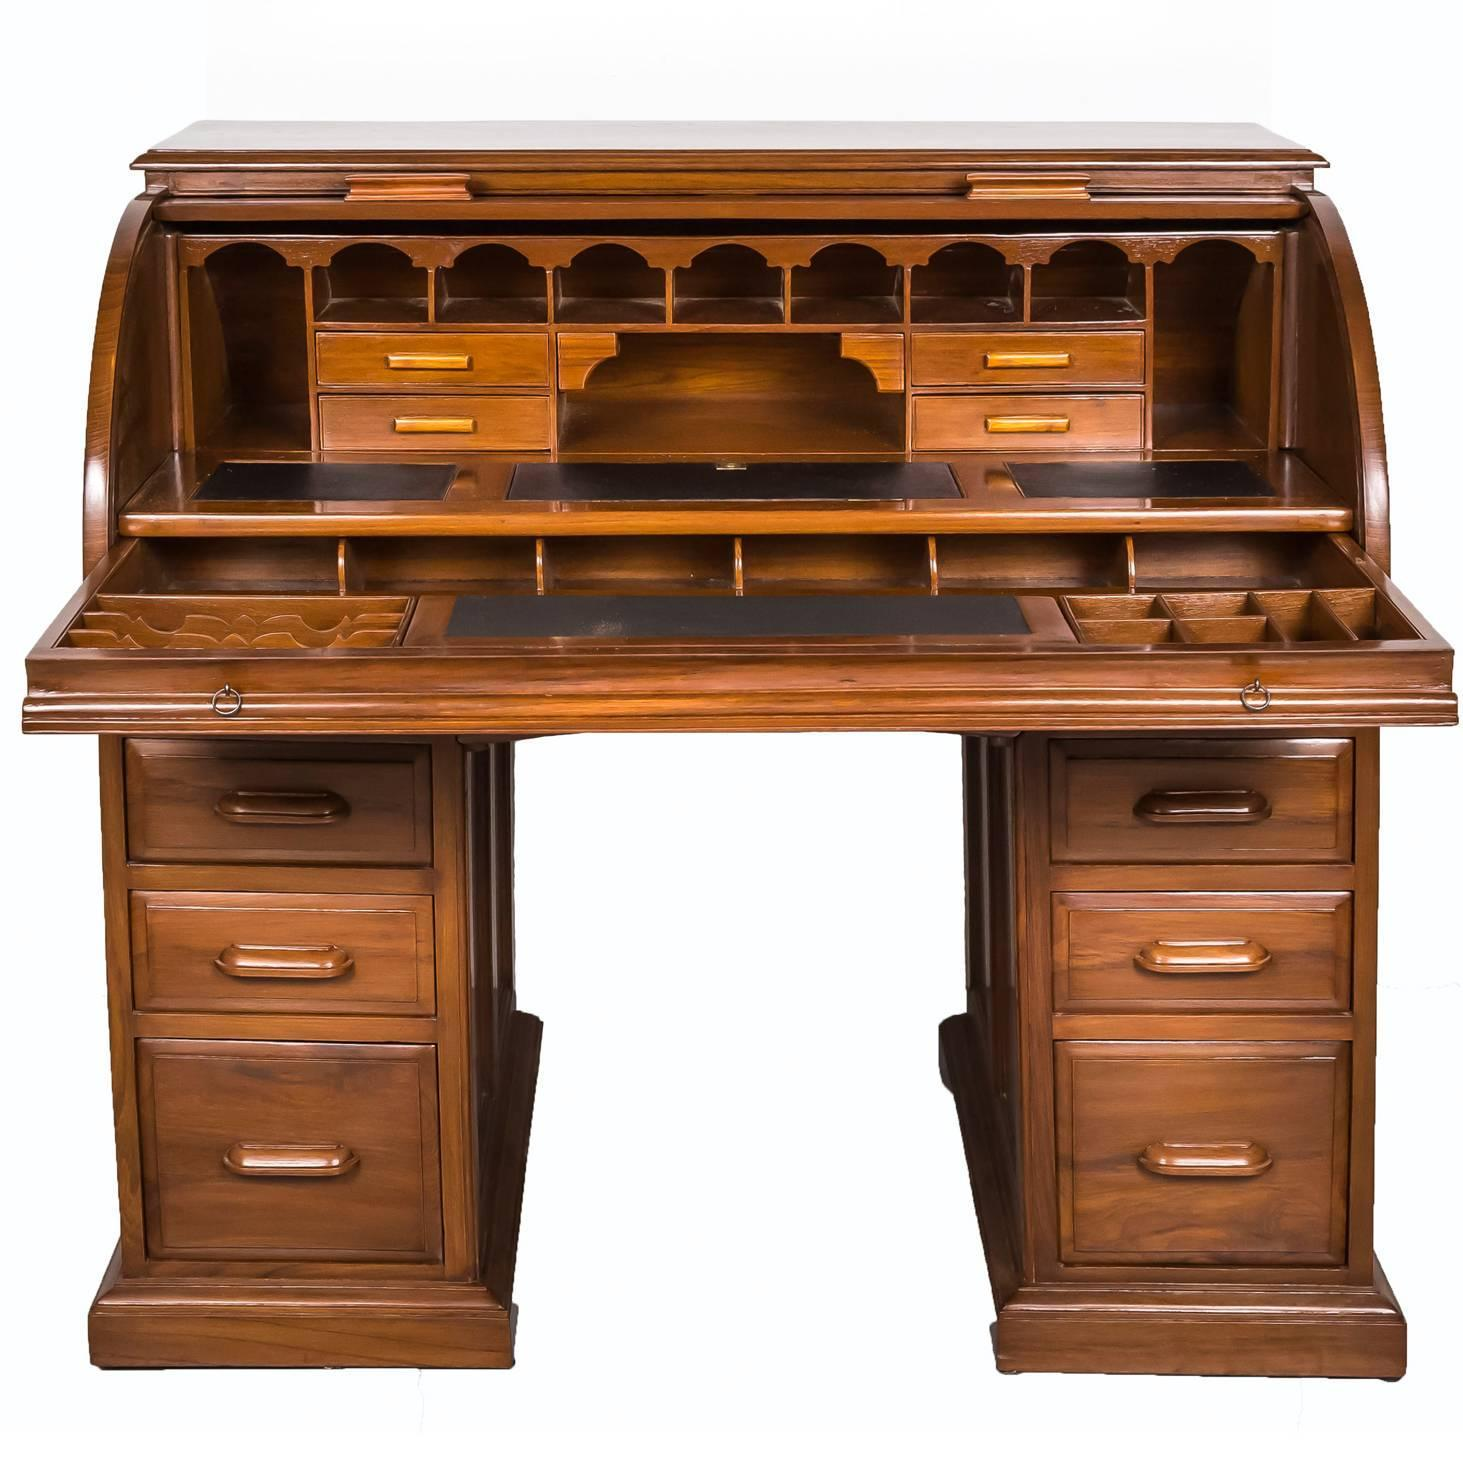 Antique Anglo Indian Or British Colonial Teakwood Cylinder Desk For Sale At 1stdibs